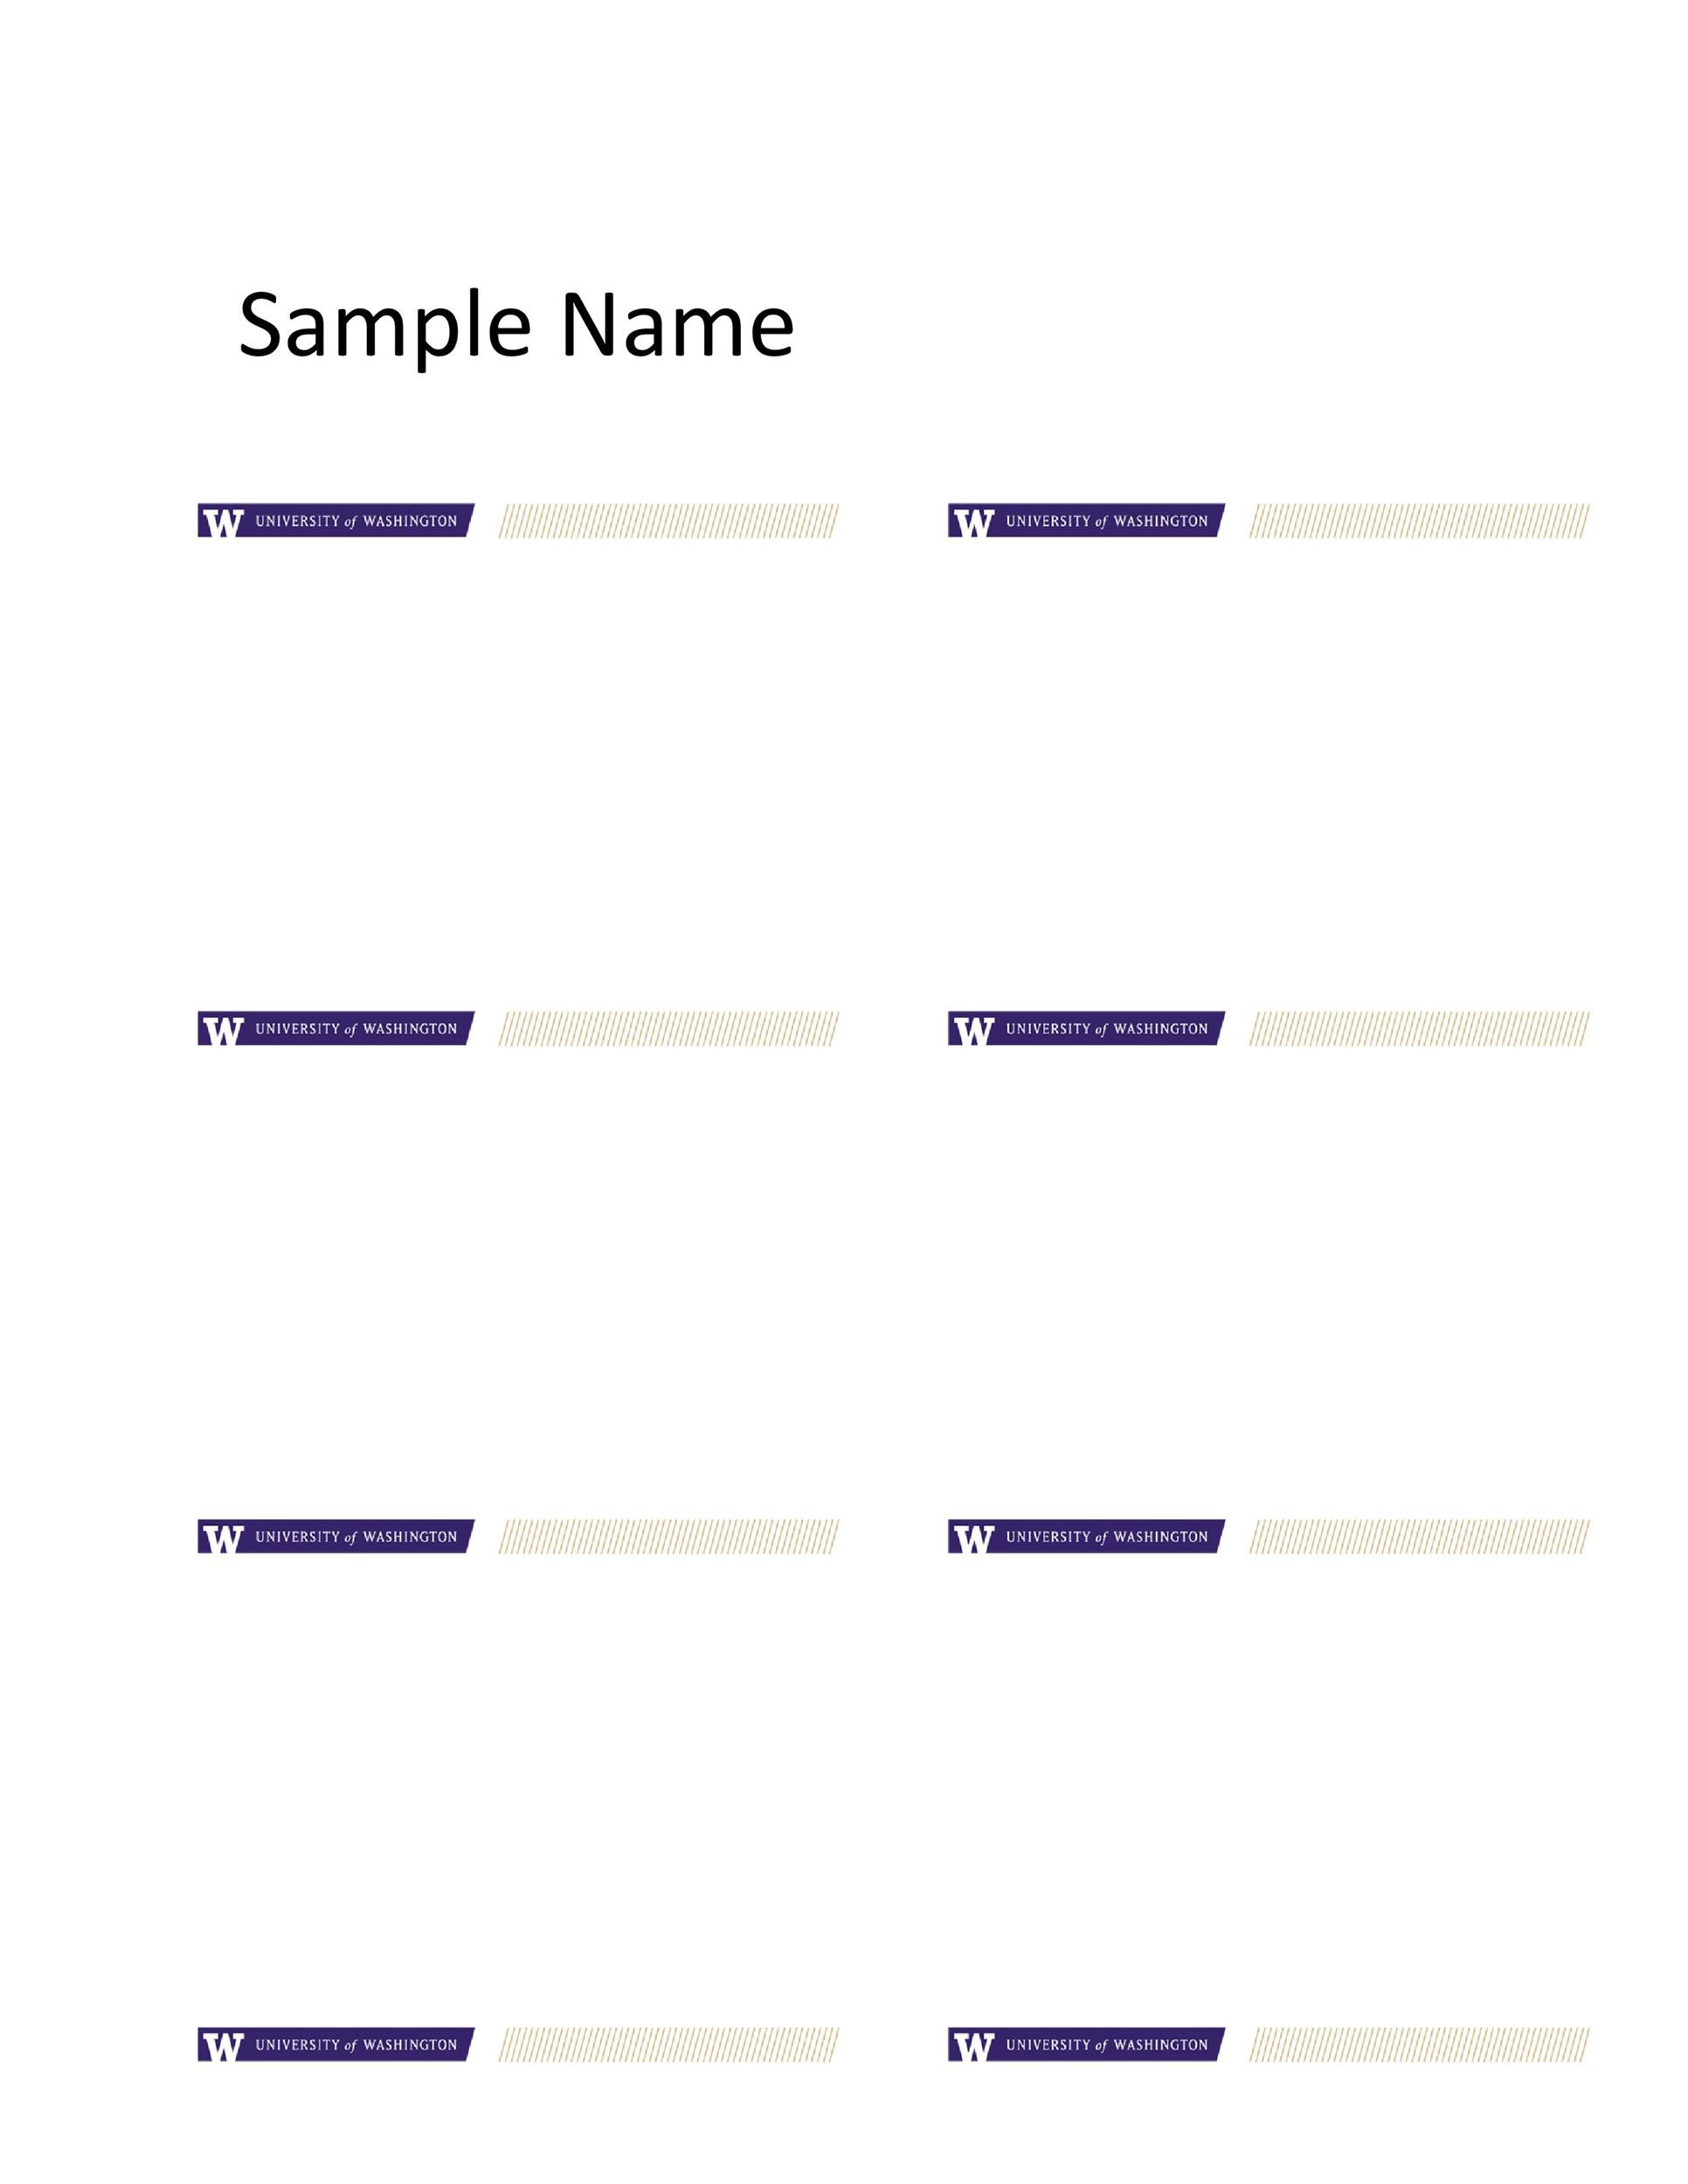 47 Free Name Tag + Badge Templates ᐅ Template Lab